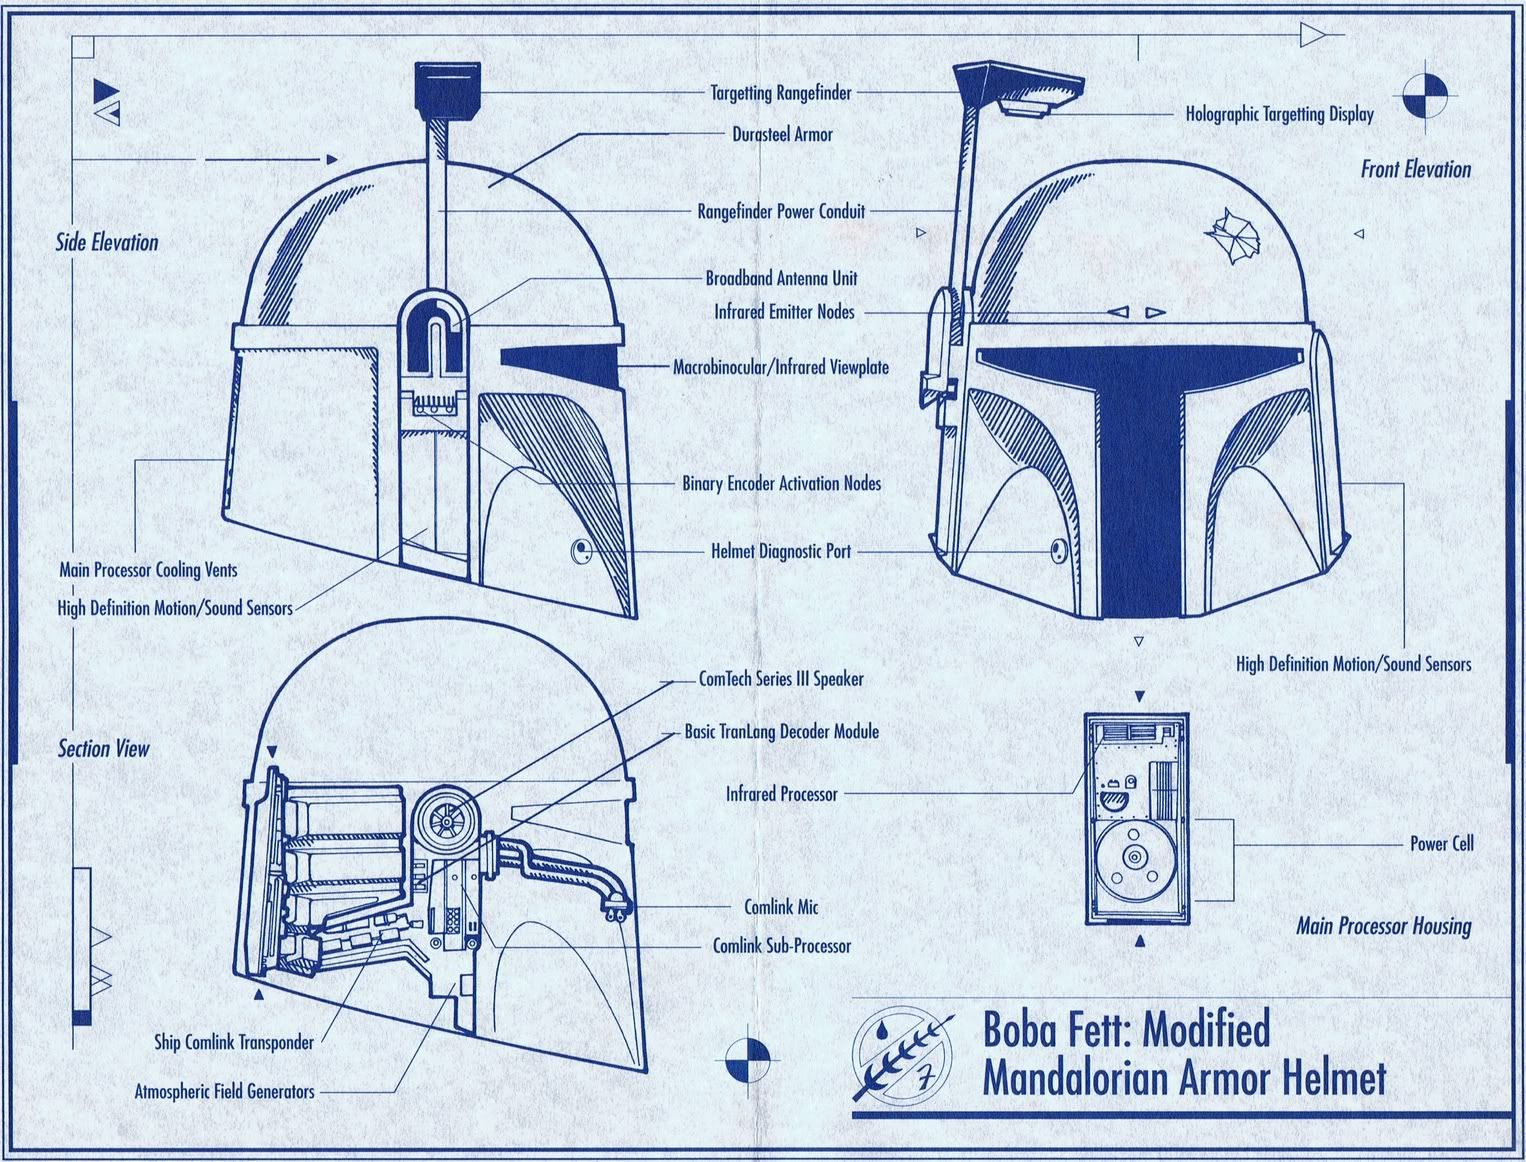 boba fett character sketch - Google Search | Boba Fett | Pinterest